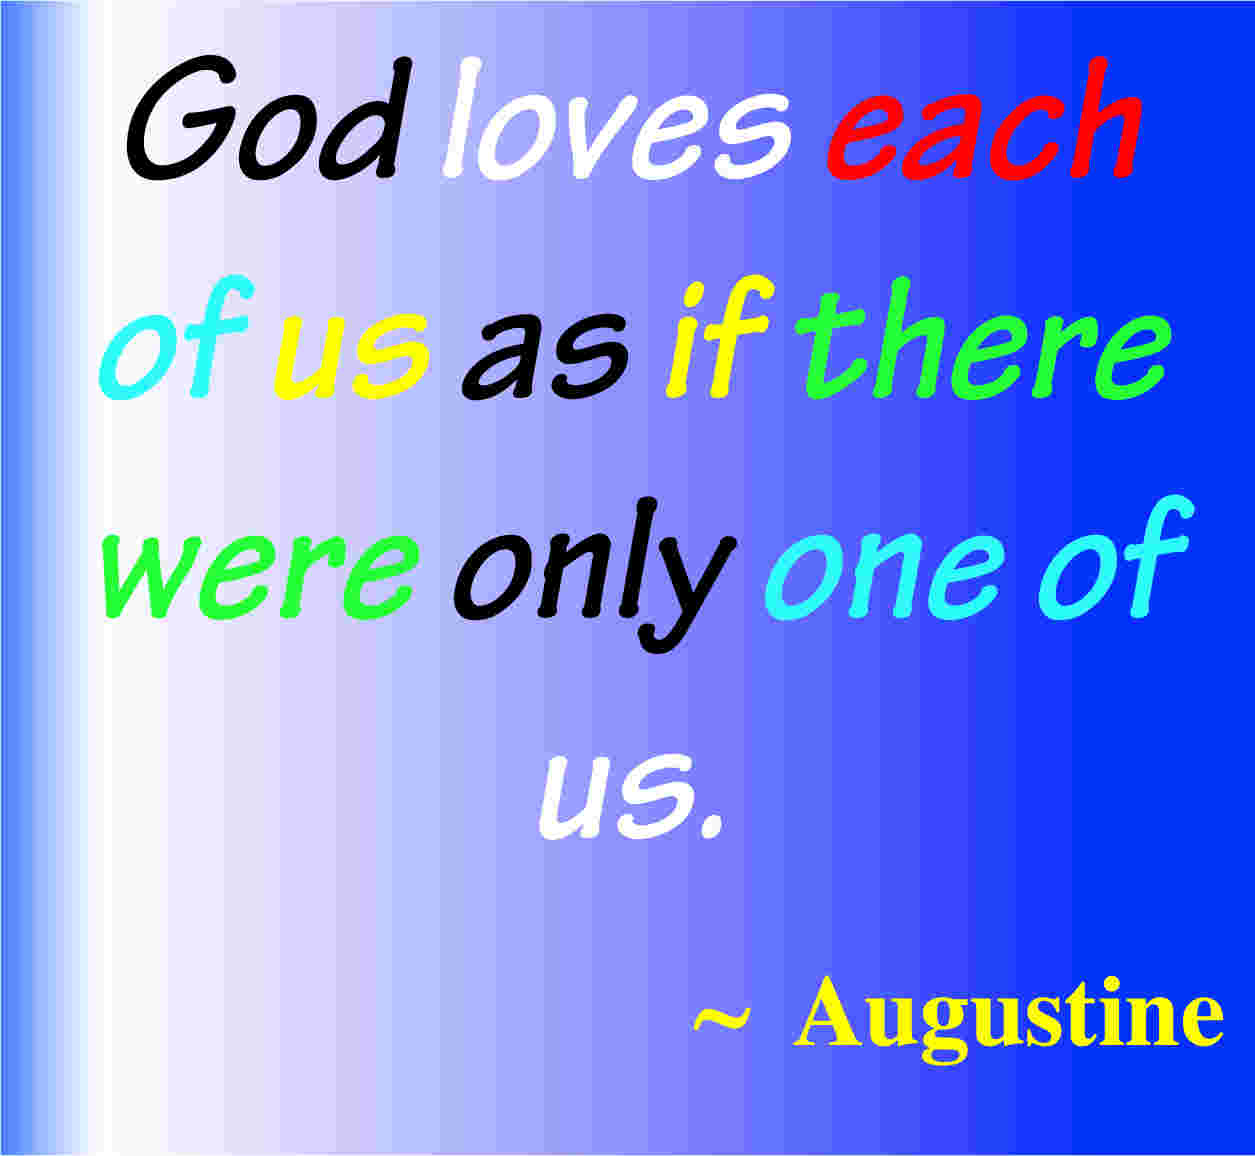 Christian Quotes About Love 20 Inspirational Bible Verses About God's Love